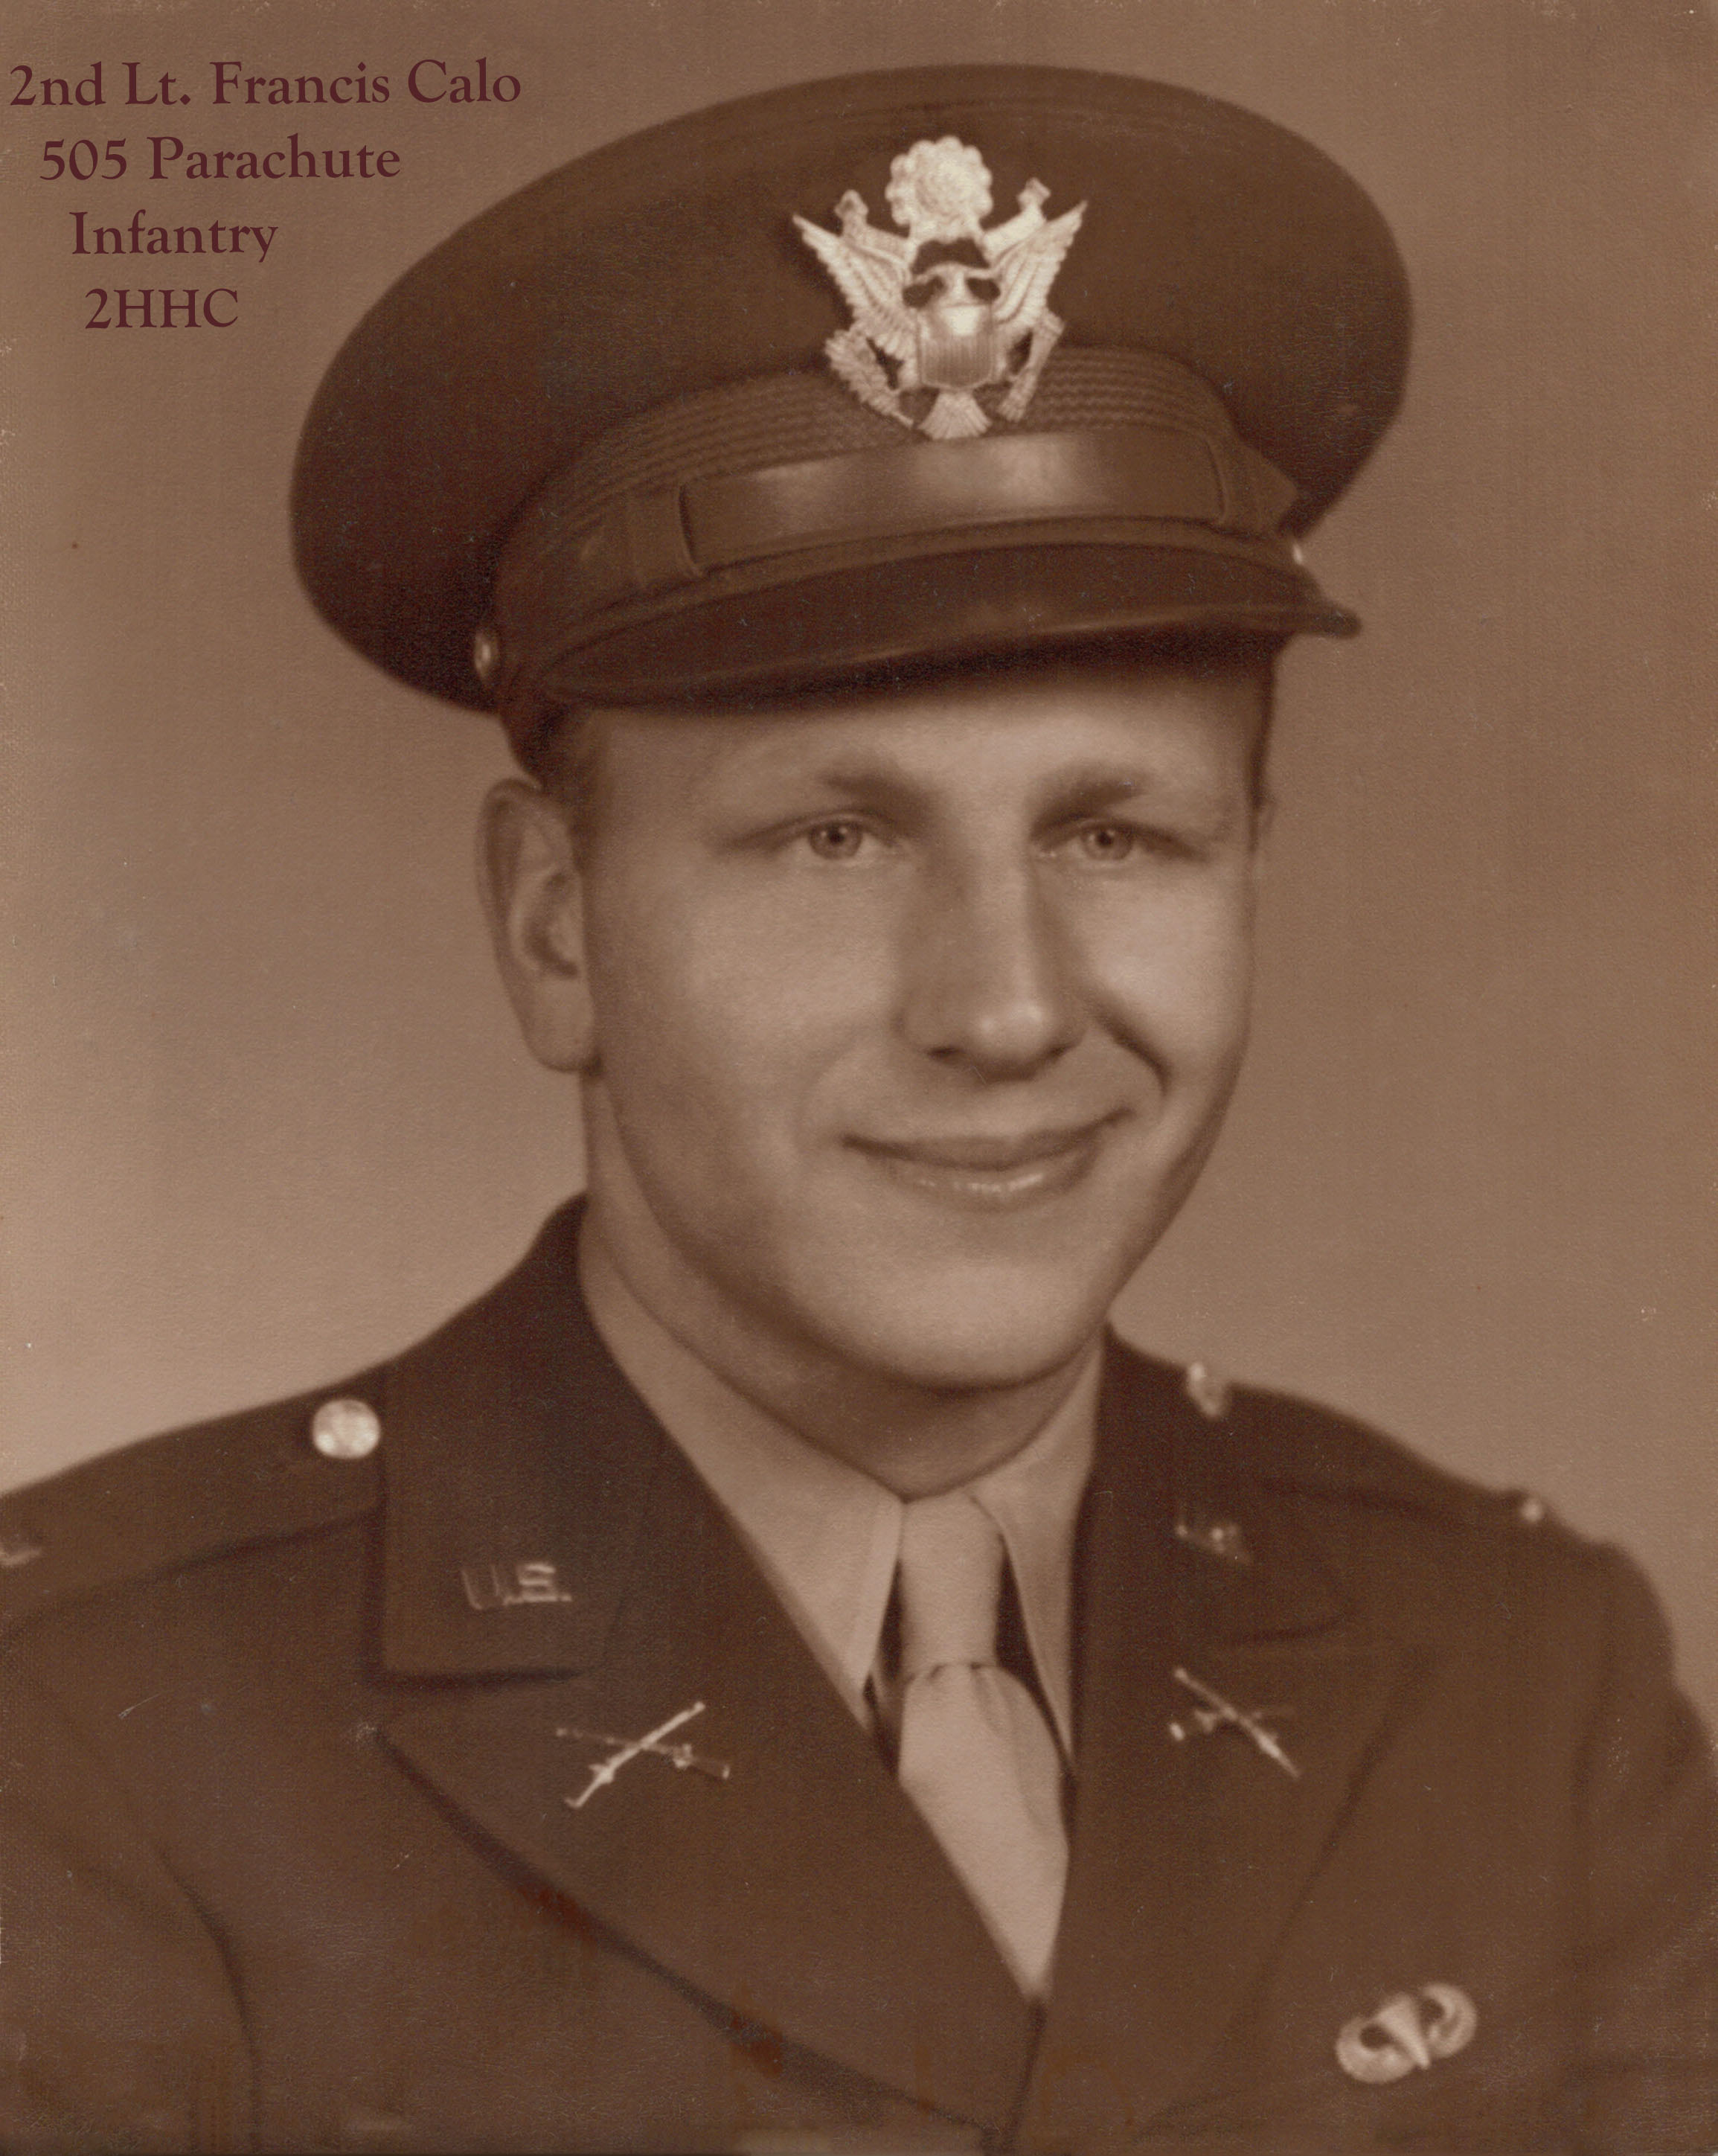 2nd Lt. Francis G. Calo - 2HHC